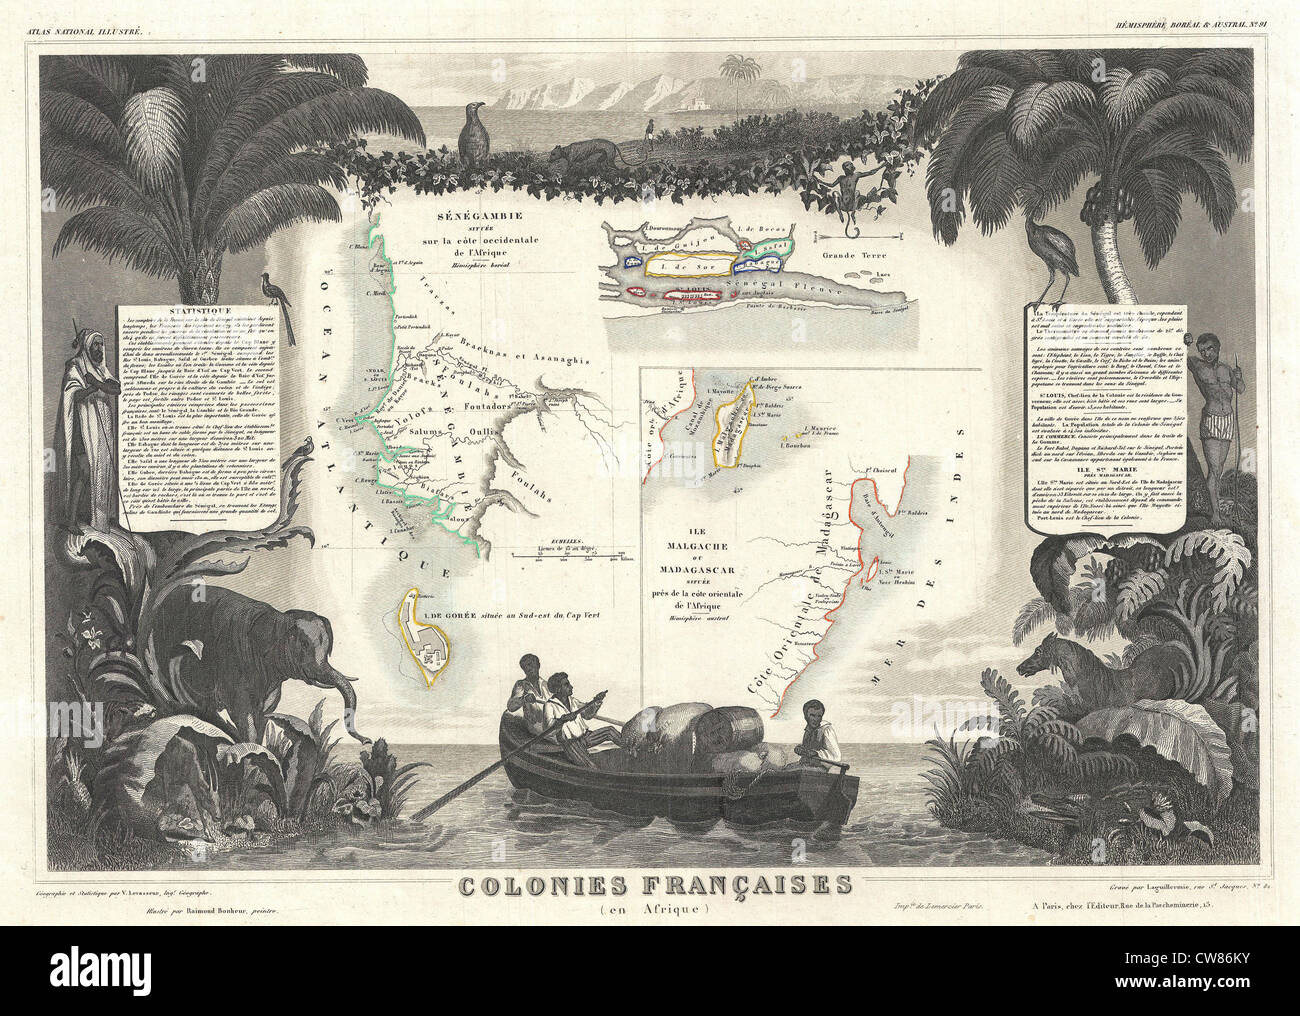 1852 Levassuer Map of Senegal, Senegambia, and Madagascar Stock Photo